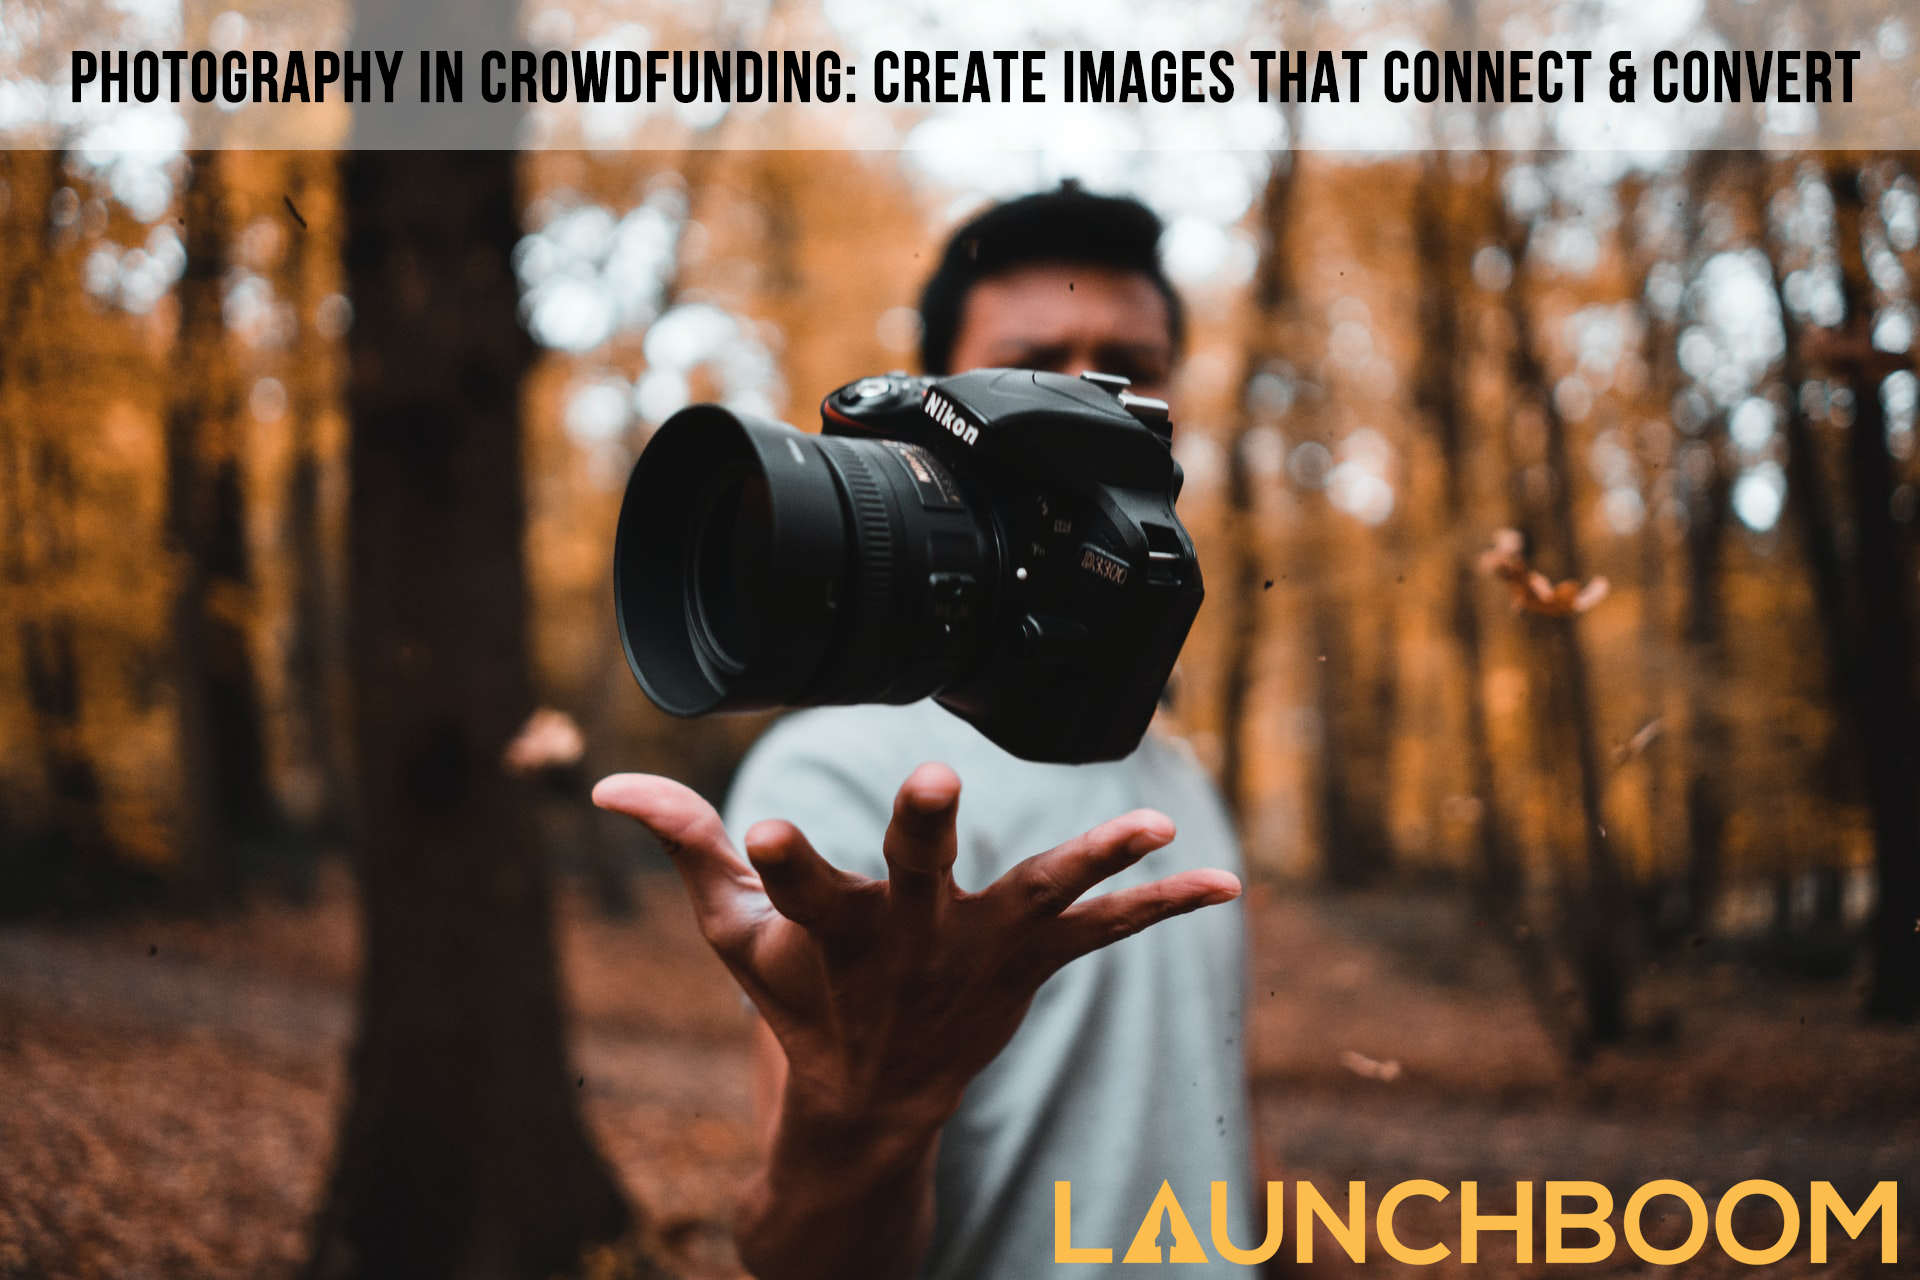 Photography in crowdfunding: Create images that connect and convert